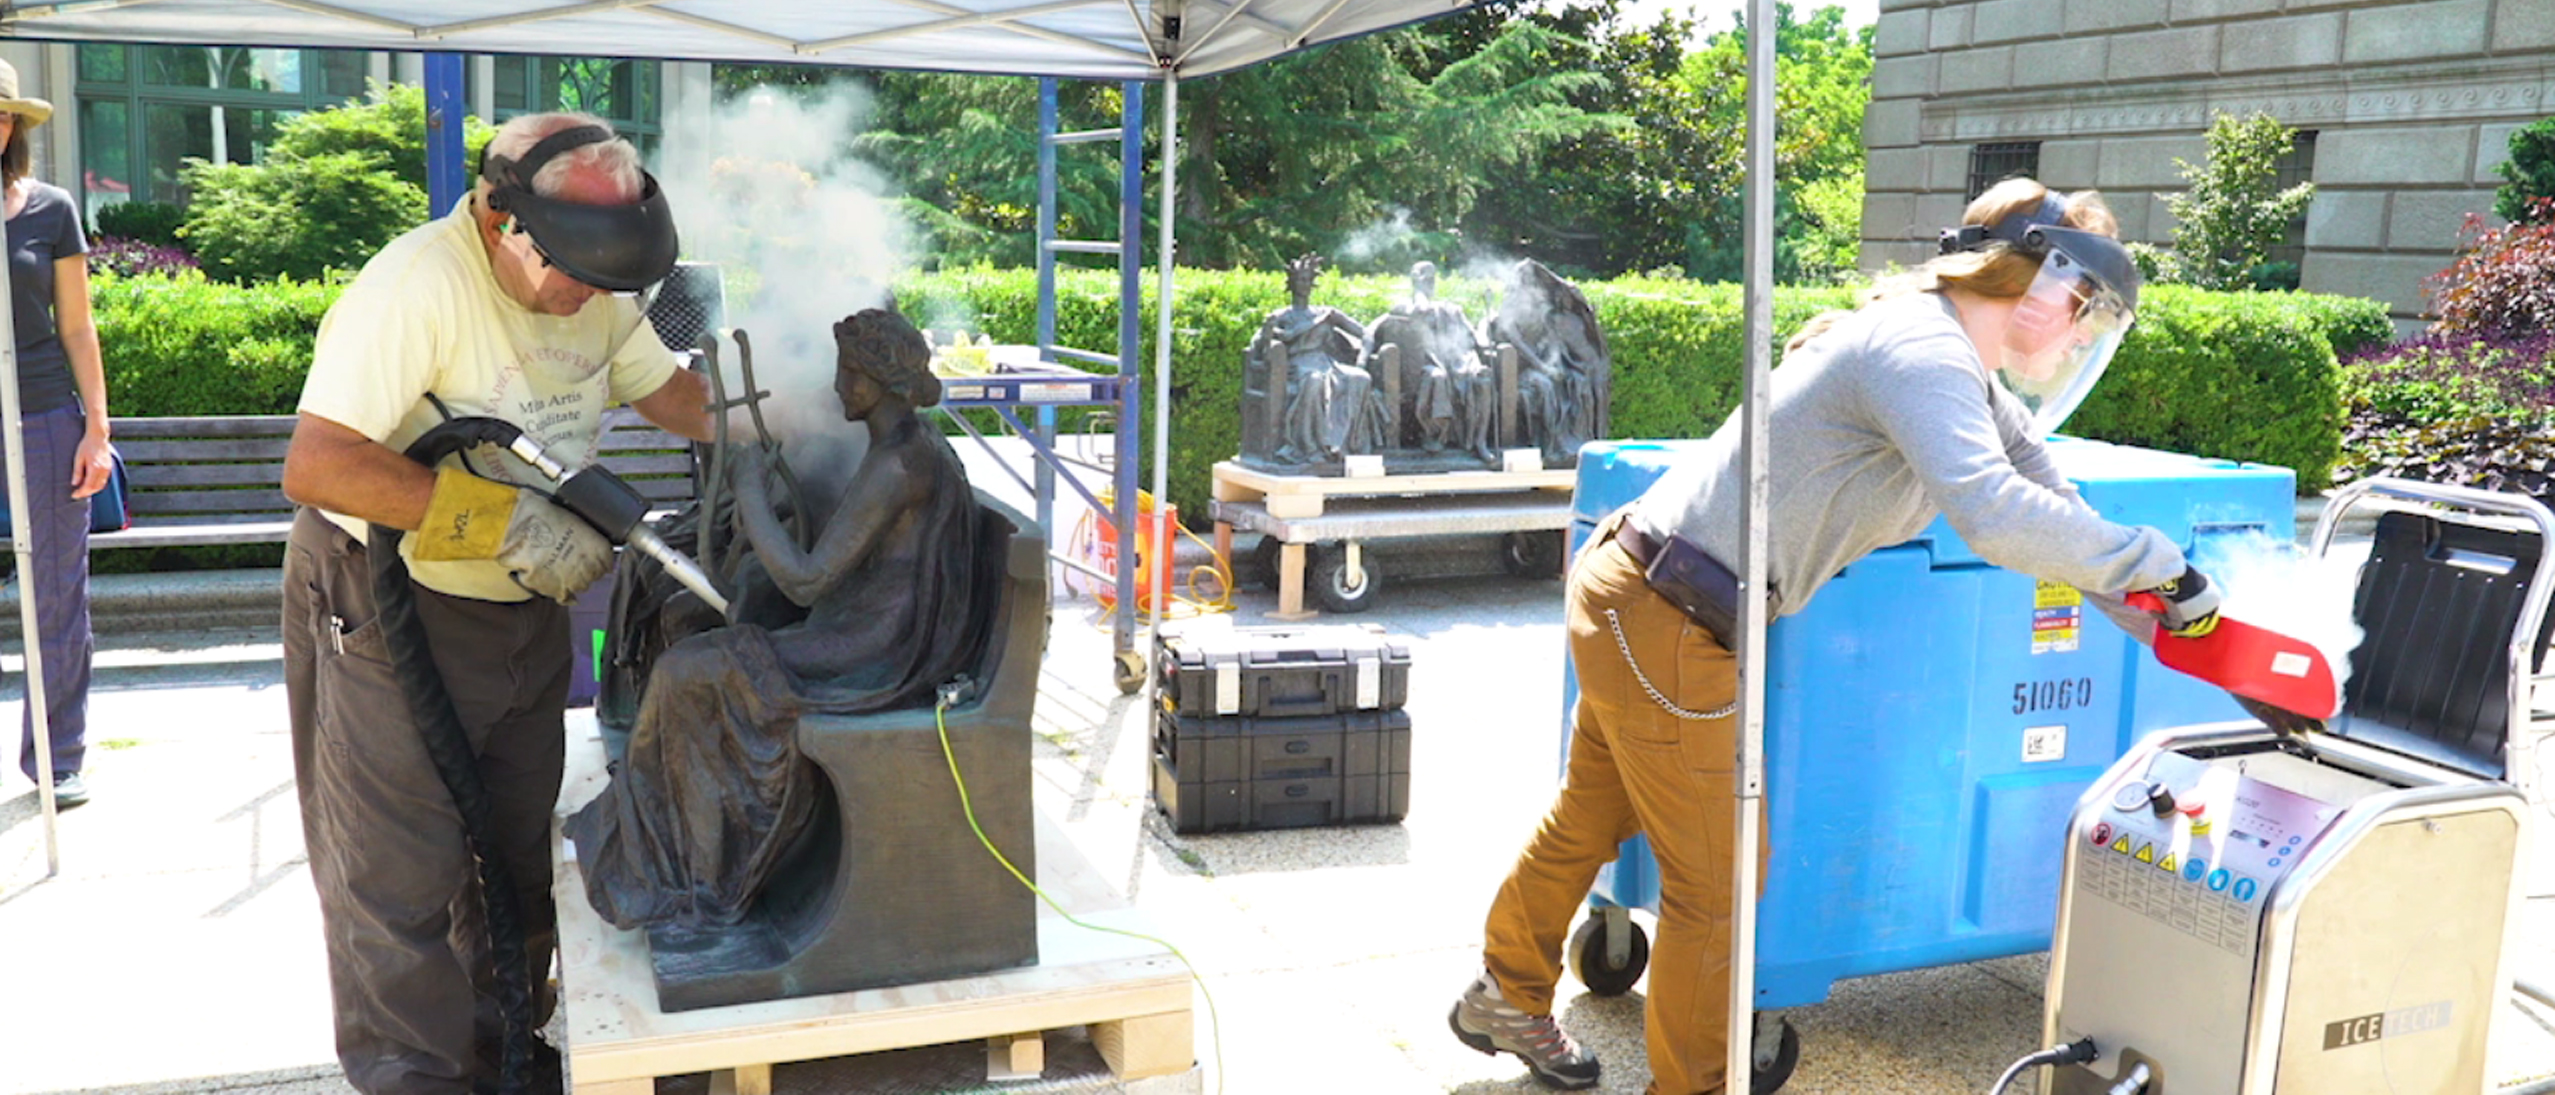 two conservators with face shields ice blasting sculptures